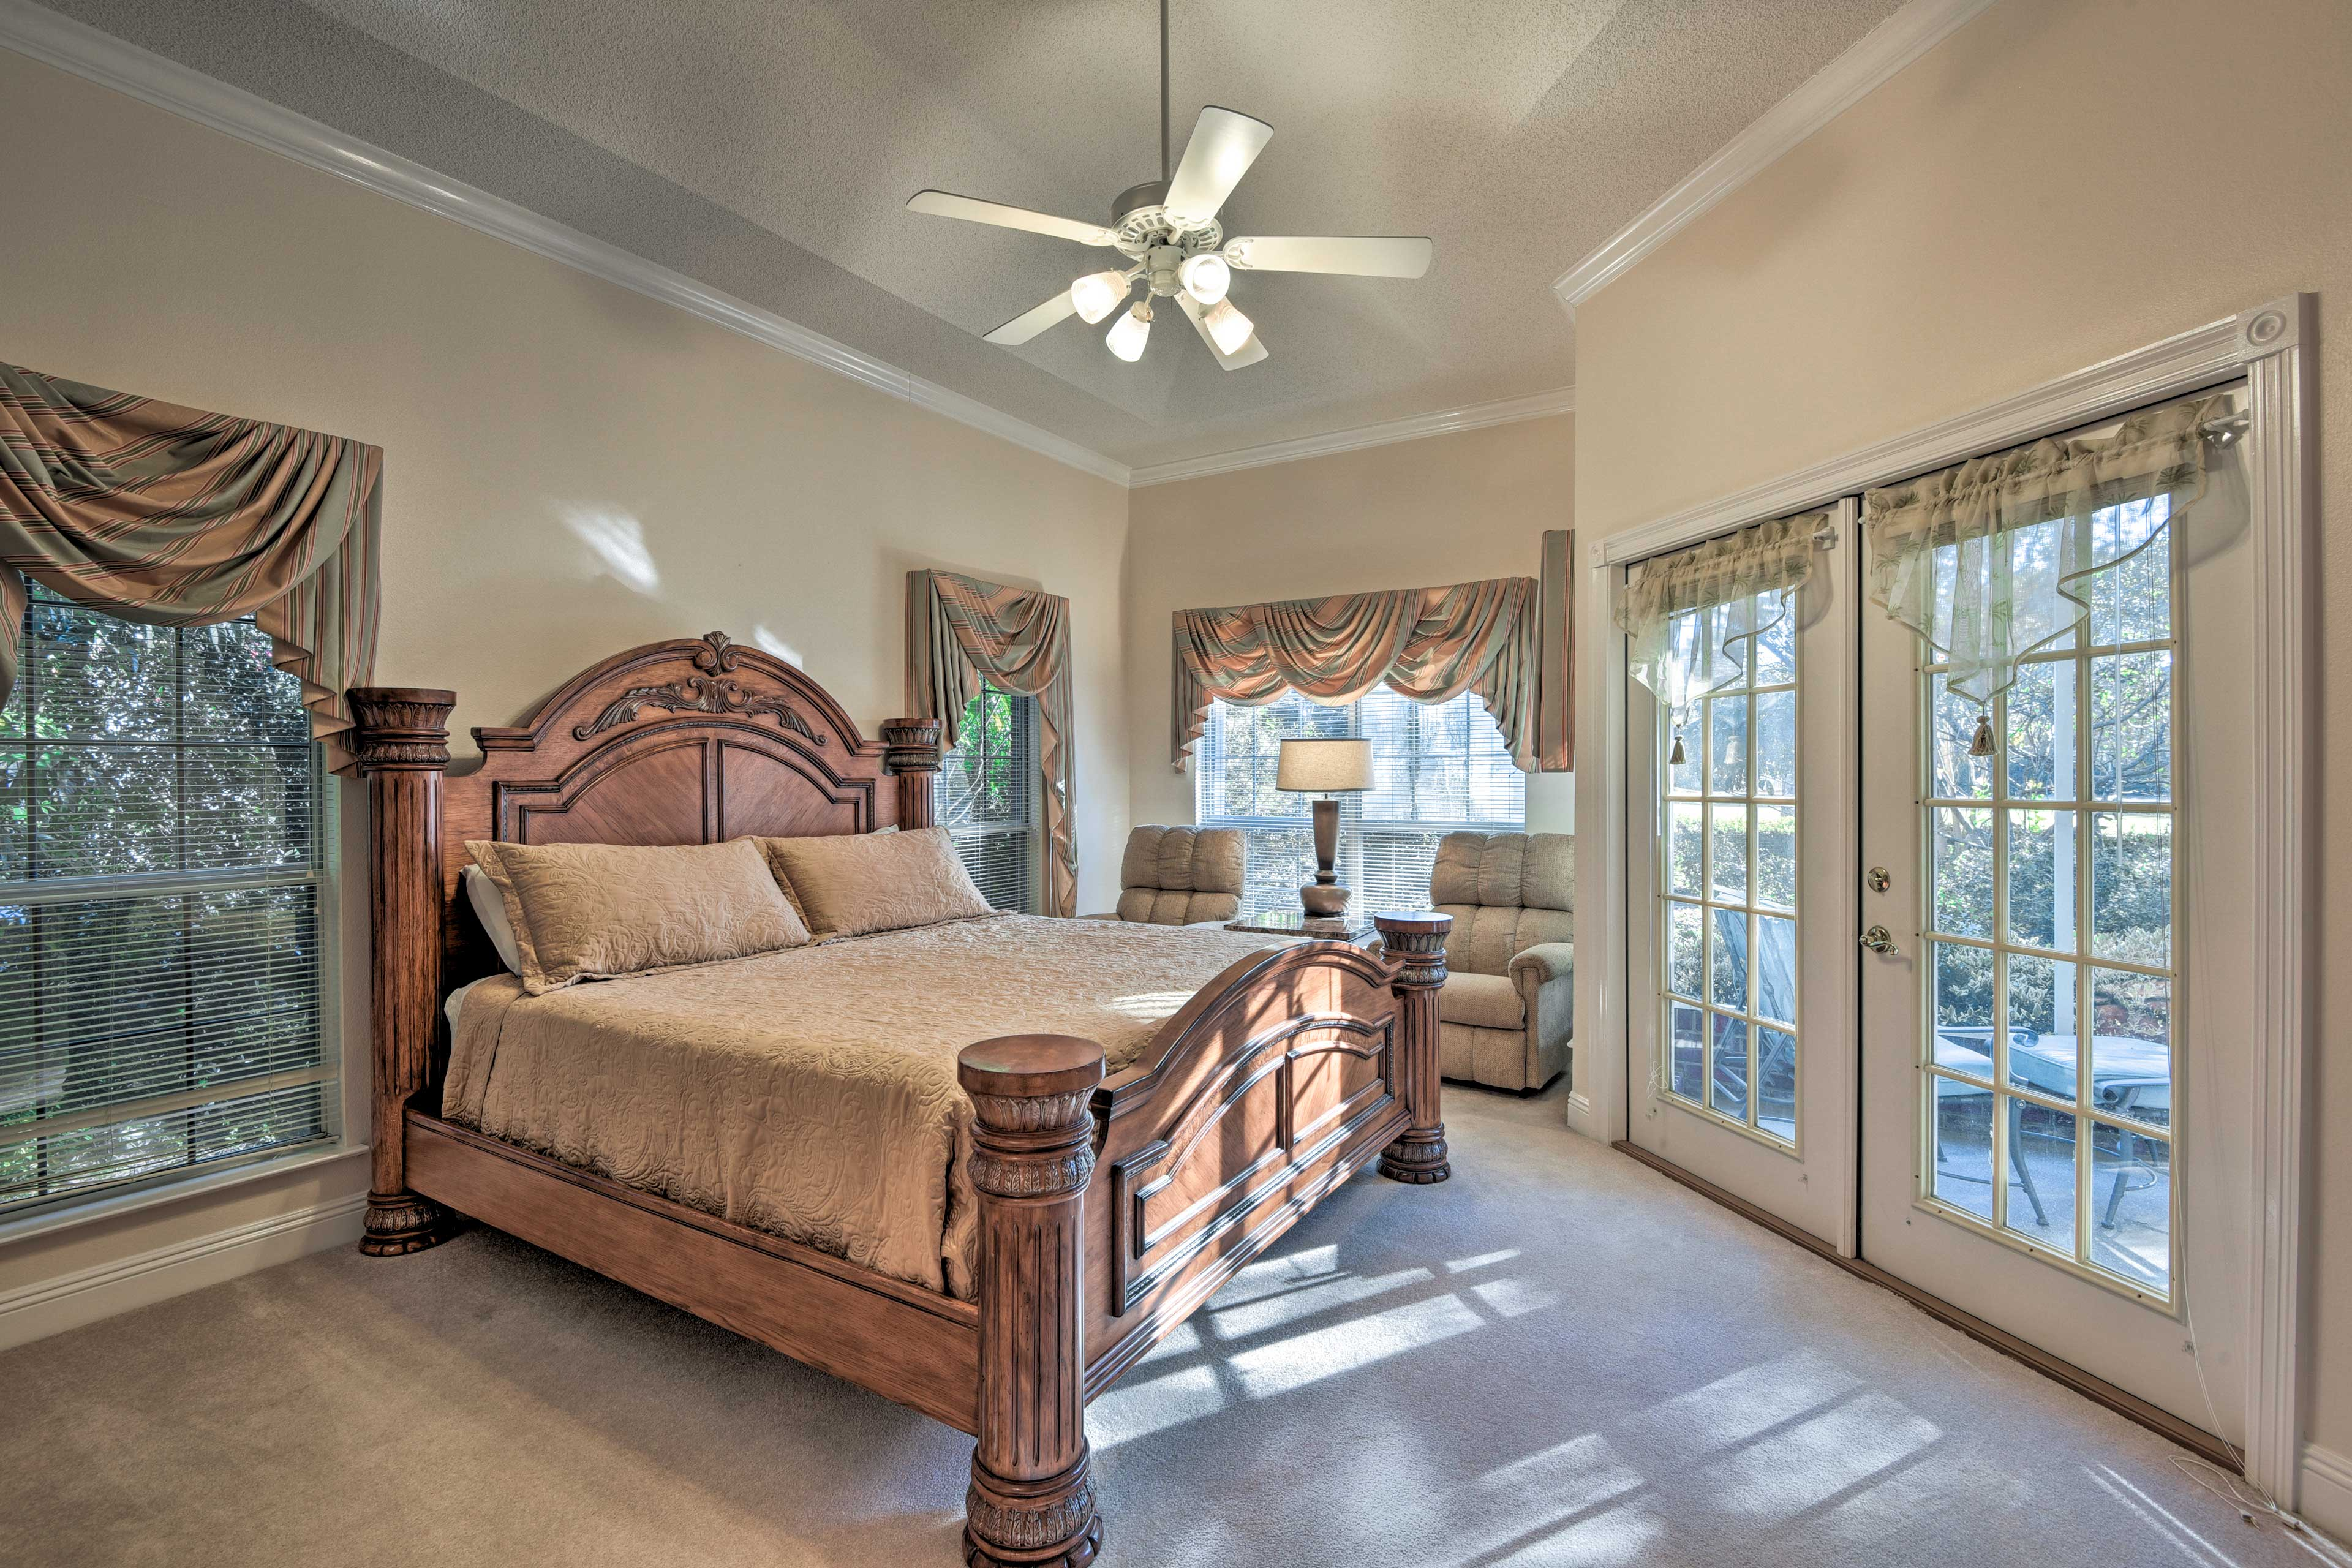 The master bedroom boasts a huge king bed.